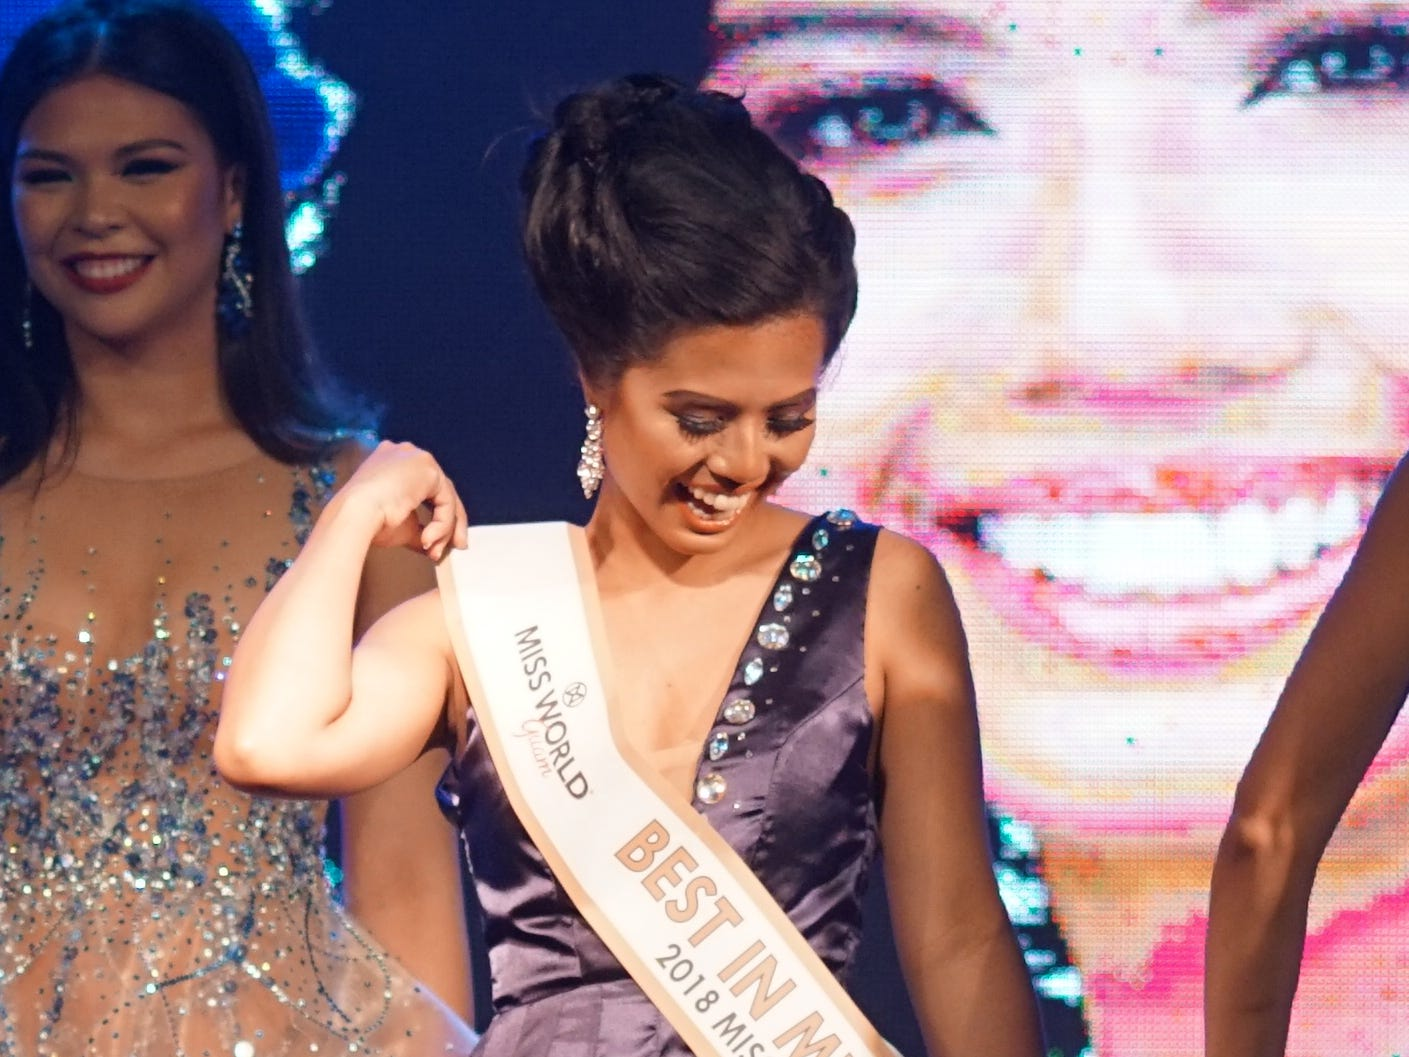 Grace Enriquez, 24, from Barrigada, 6th contestant wins the Best in Multimedia award at the 2018 Miss World Guam pageant held at Sheraton Laguna Guam Resort.